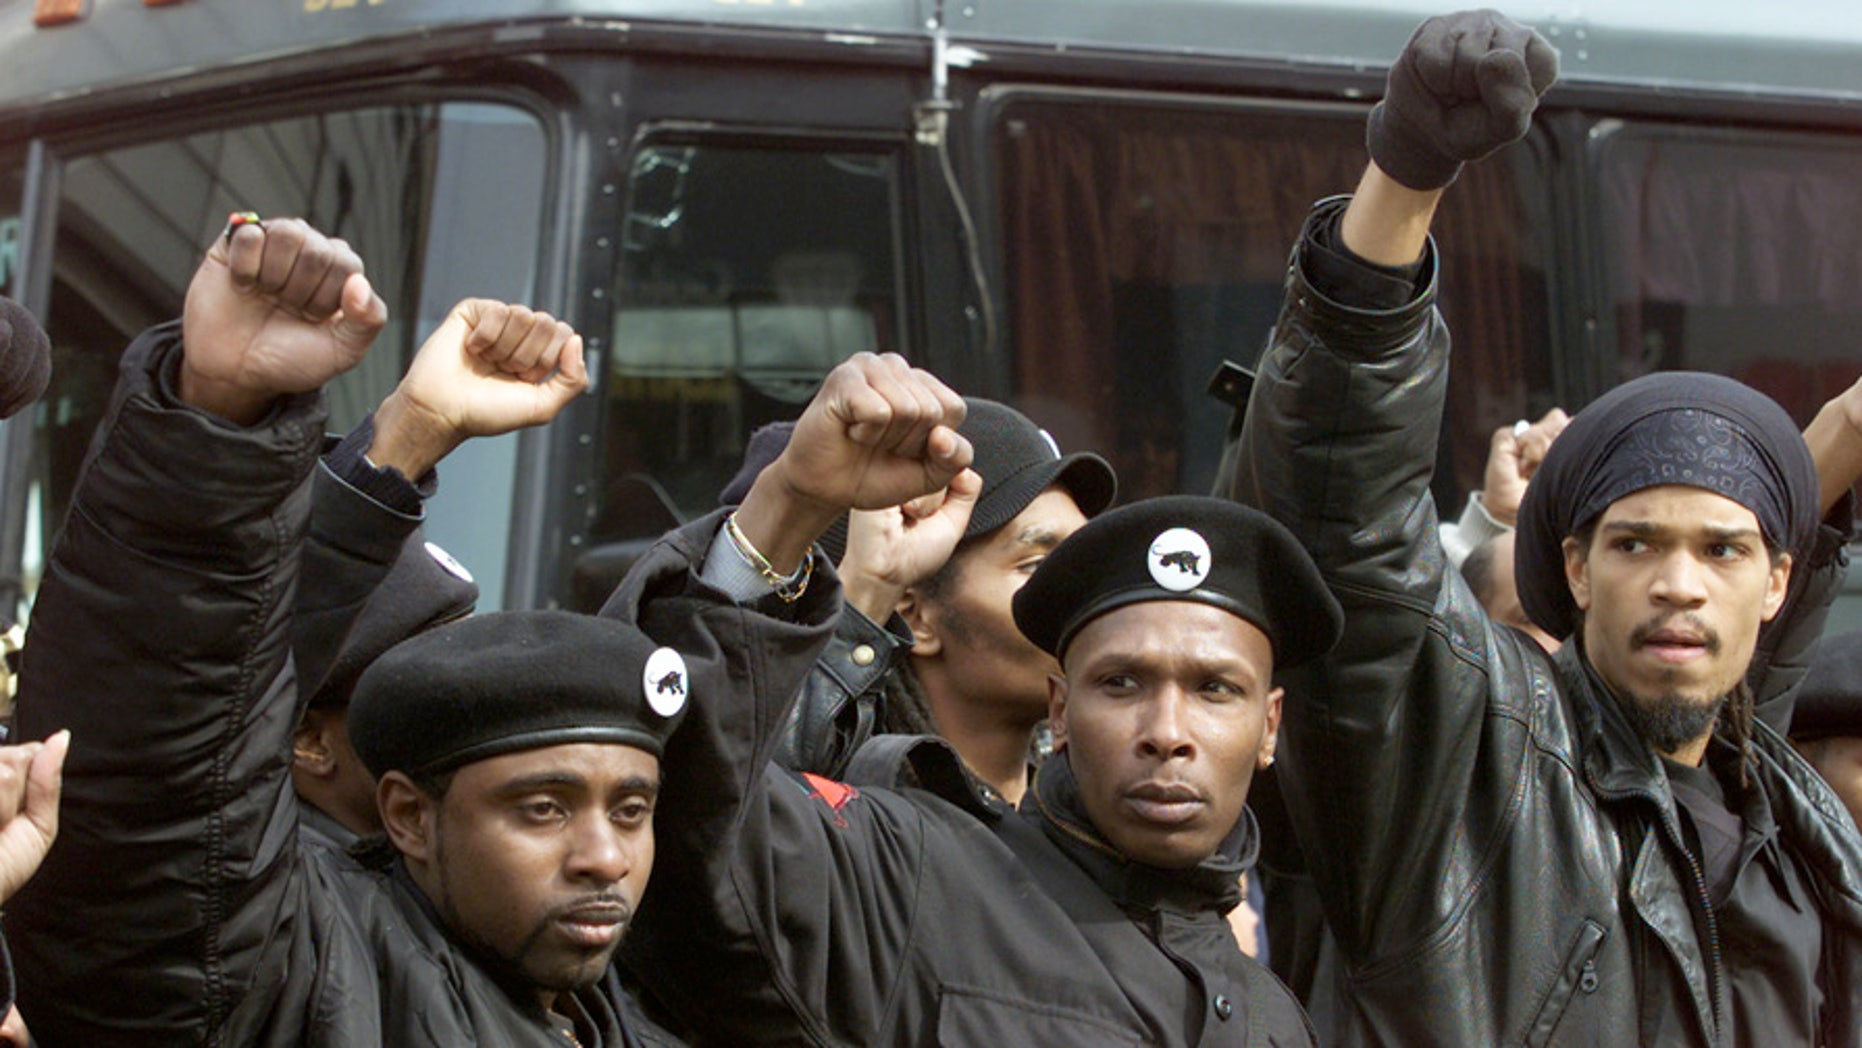 Members of the New Black Panther Party in New York in February 2001.